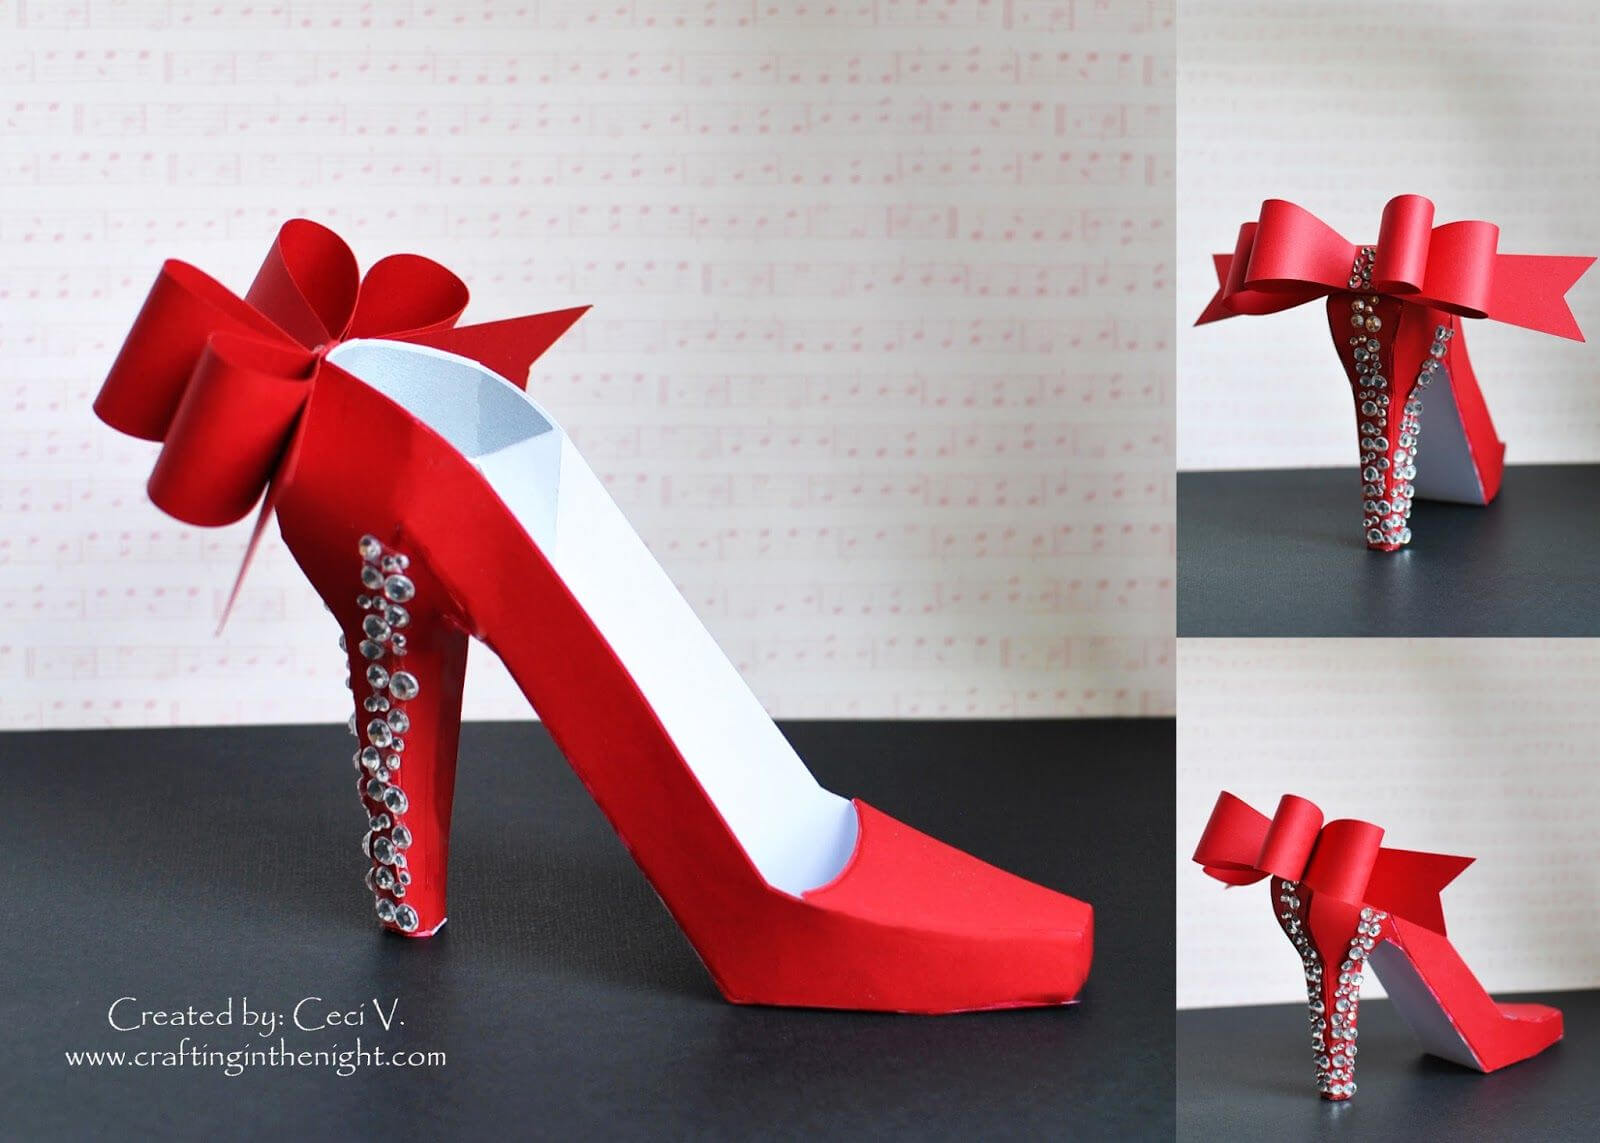 Crafting In The Night: 3D High Heel Shoe - Svgcuts | 3D with High Heel Template For Cards